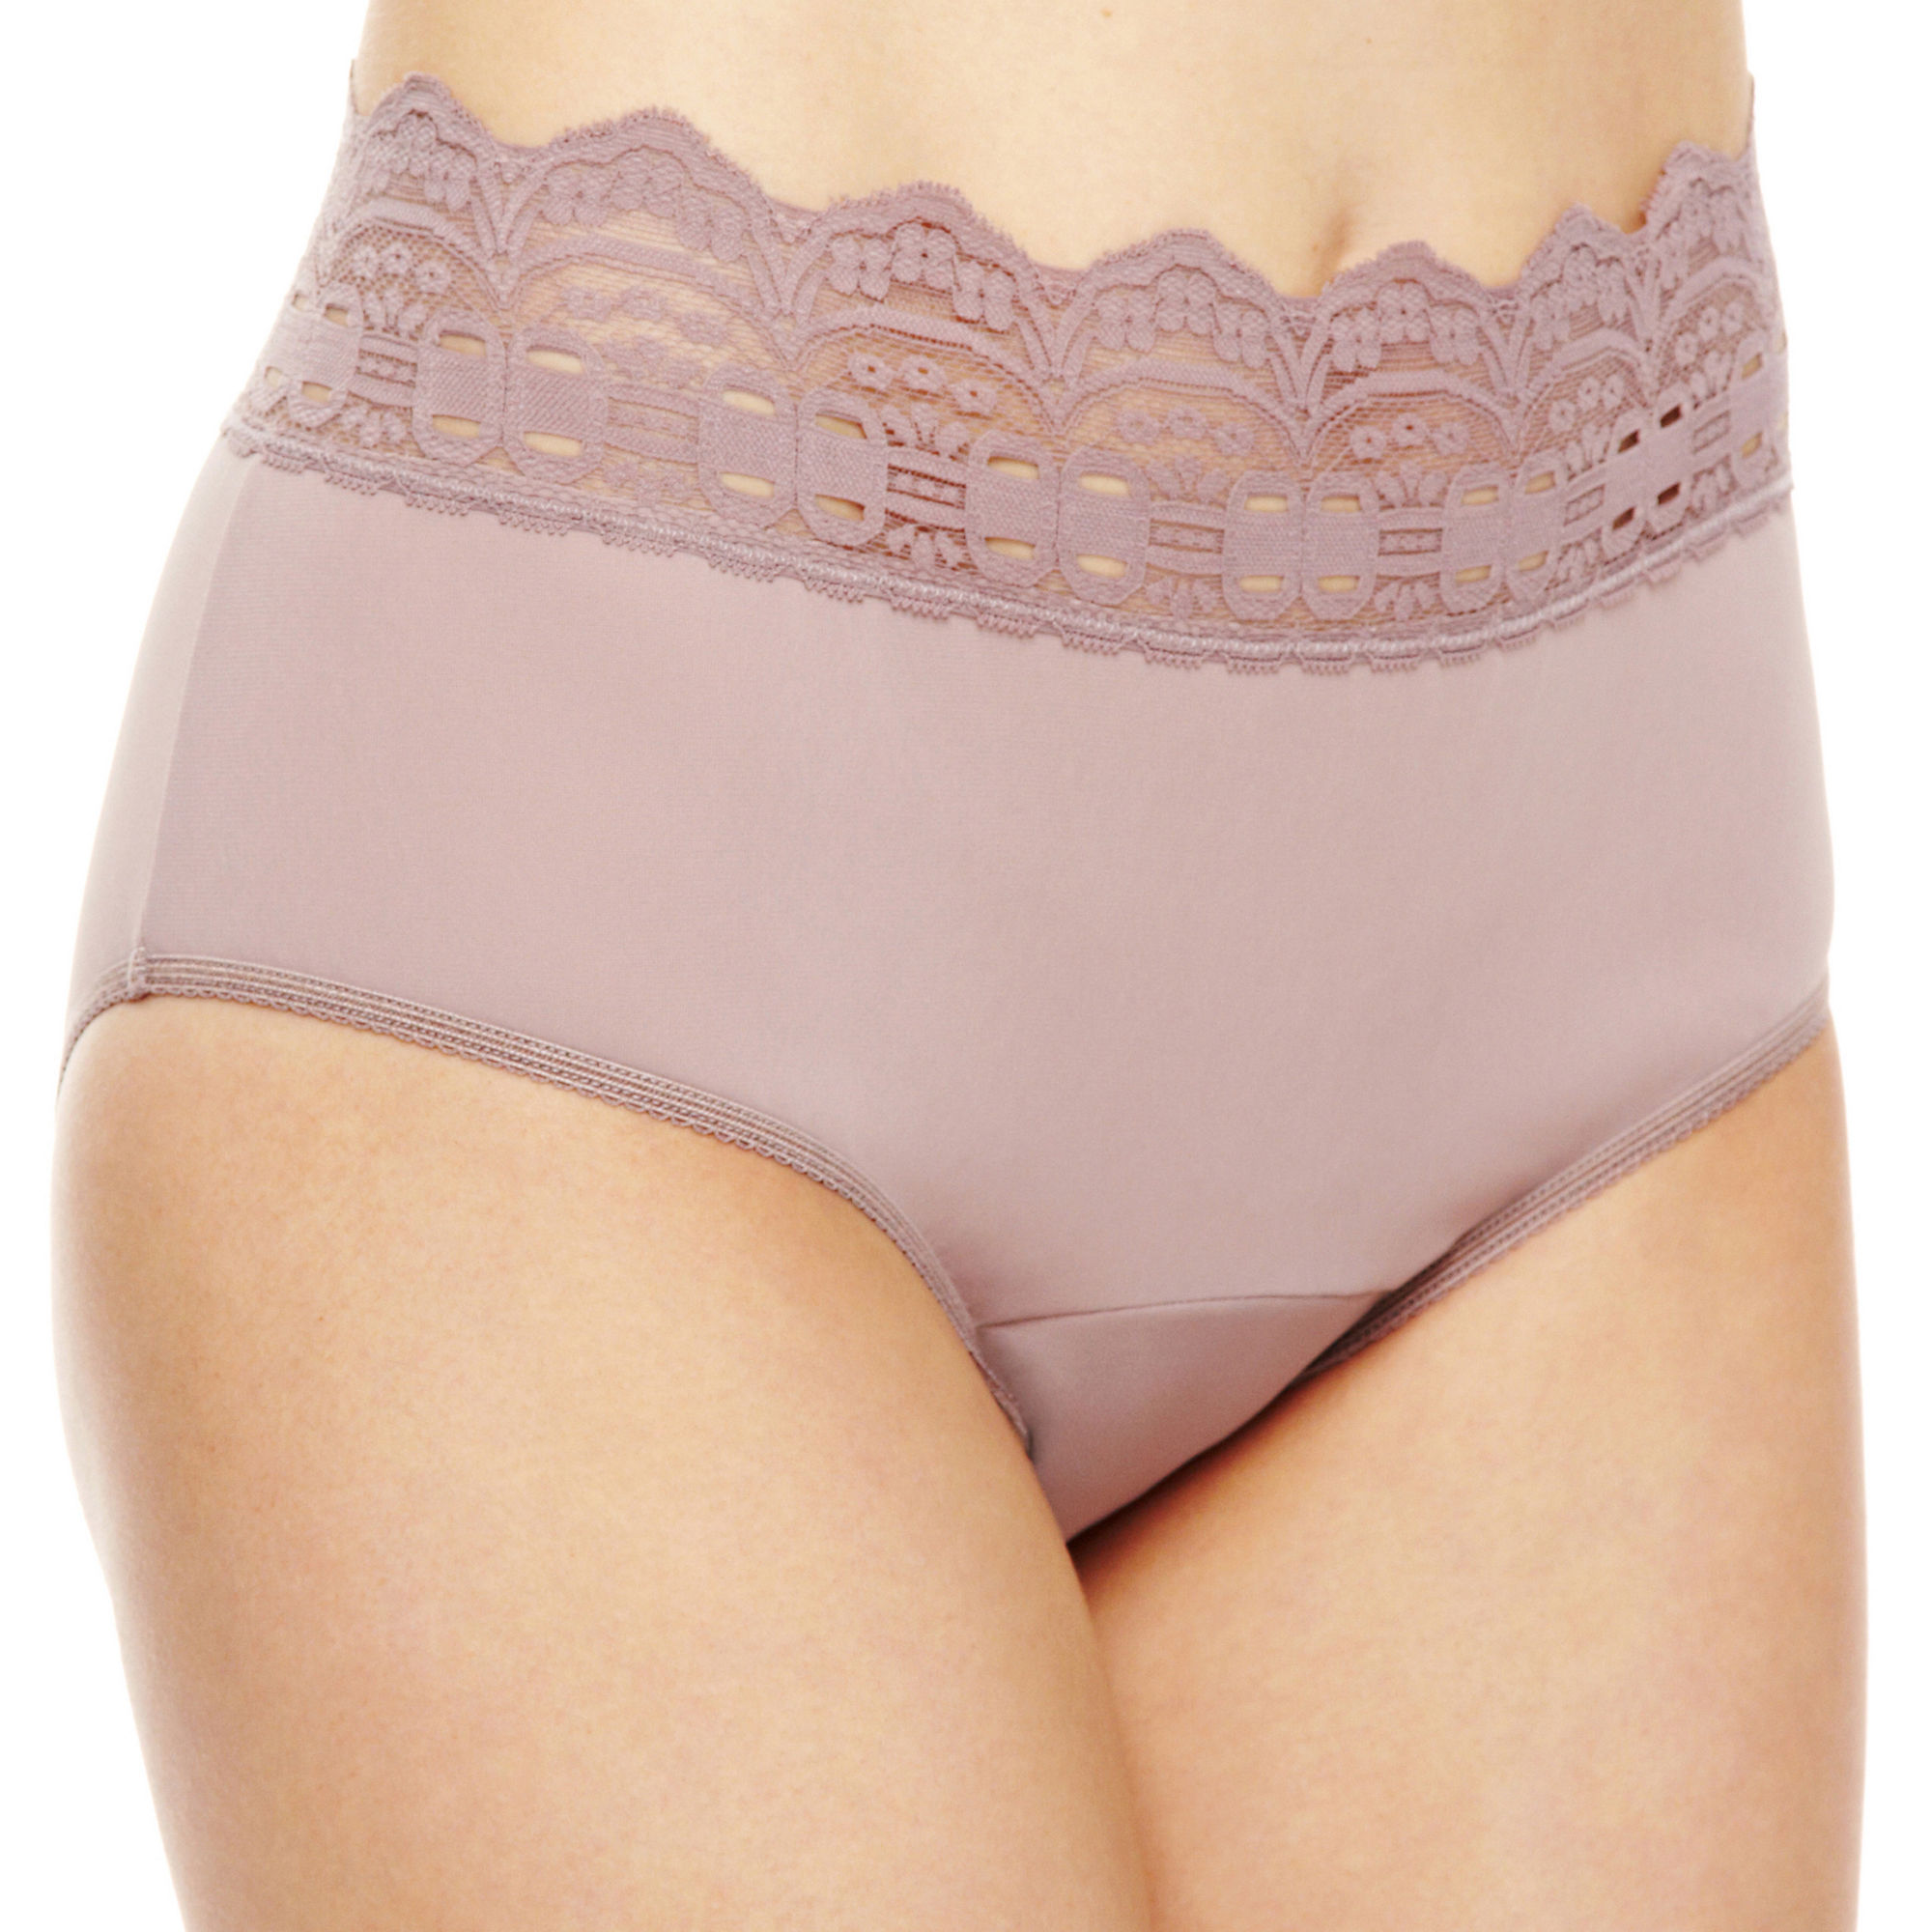 81b9f4dd4e63 ... UPC 029442008474 product image for Olga Secret Hug Half Pant Hipster  Panties - 913 | upcitemdb ...